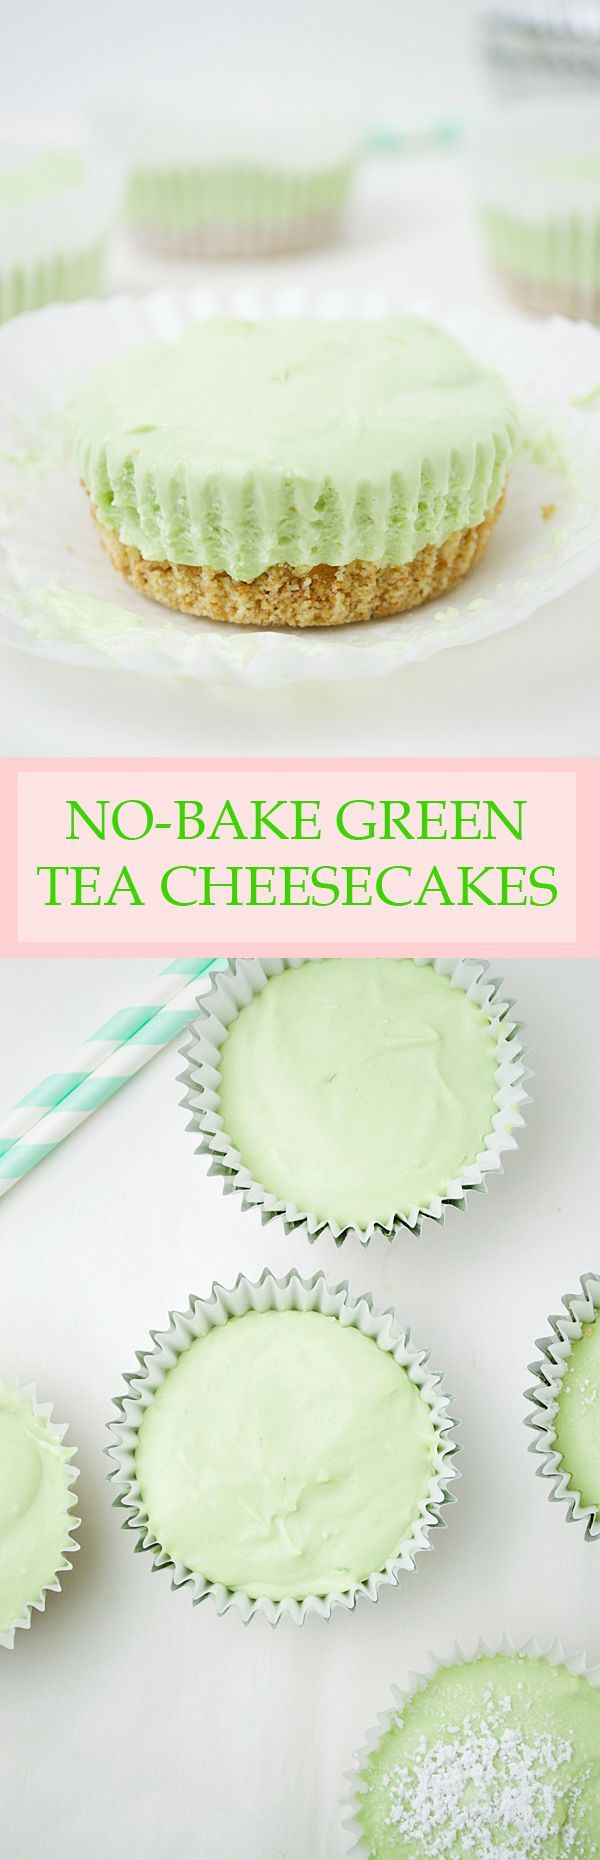 3 tsp Matcha powder. 1 Food coloring, green. 2 tbsp Granulated sugar. 1/3 cup Powdered sugar. 1 tbsp Sugar. 1 tsp Vanilla extract. 1 cup Graham crackers. 3 tbsp Butter, unsalted. 1 (8 oz package Cream cheese. 1 cup Heavy cream, lightly whipped.